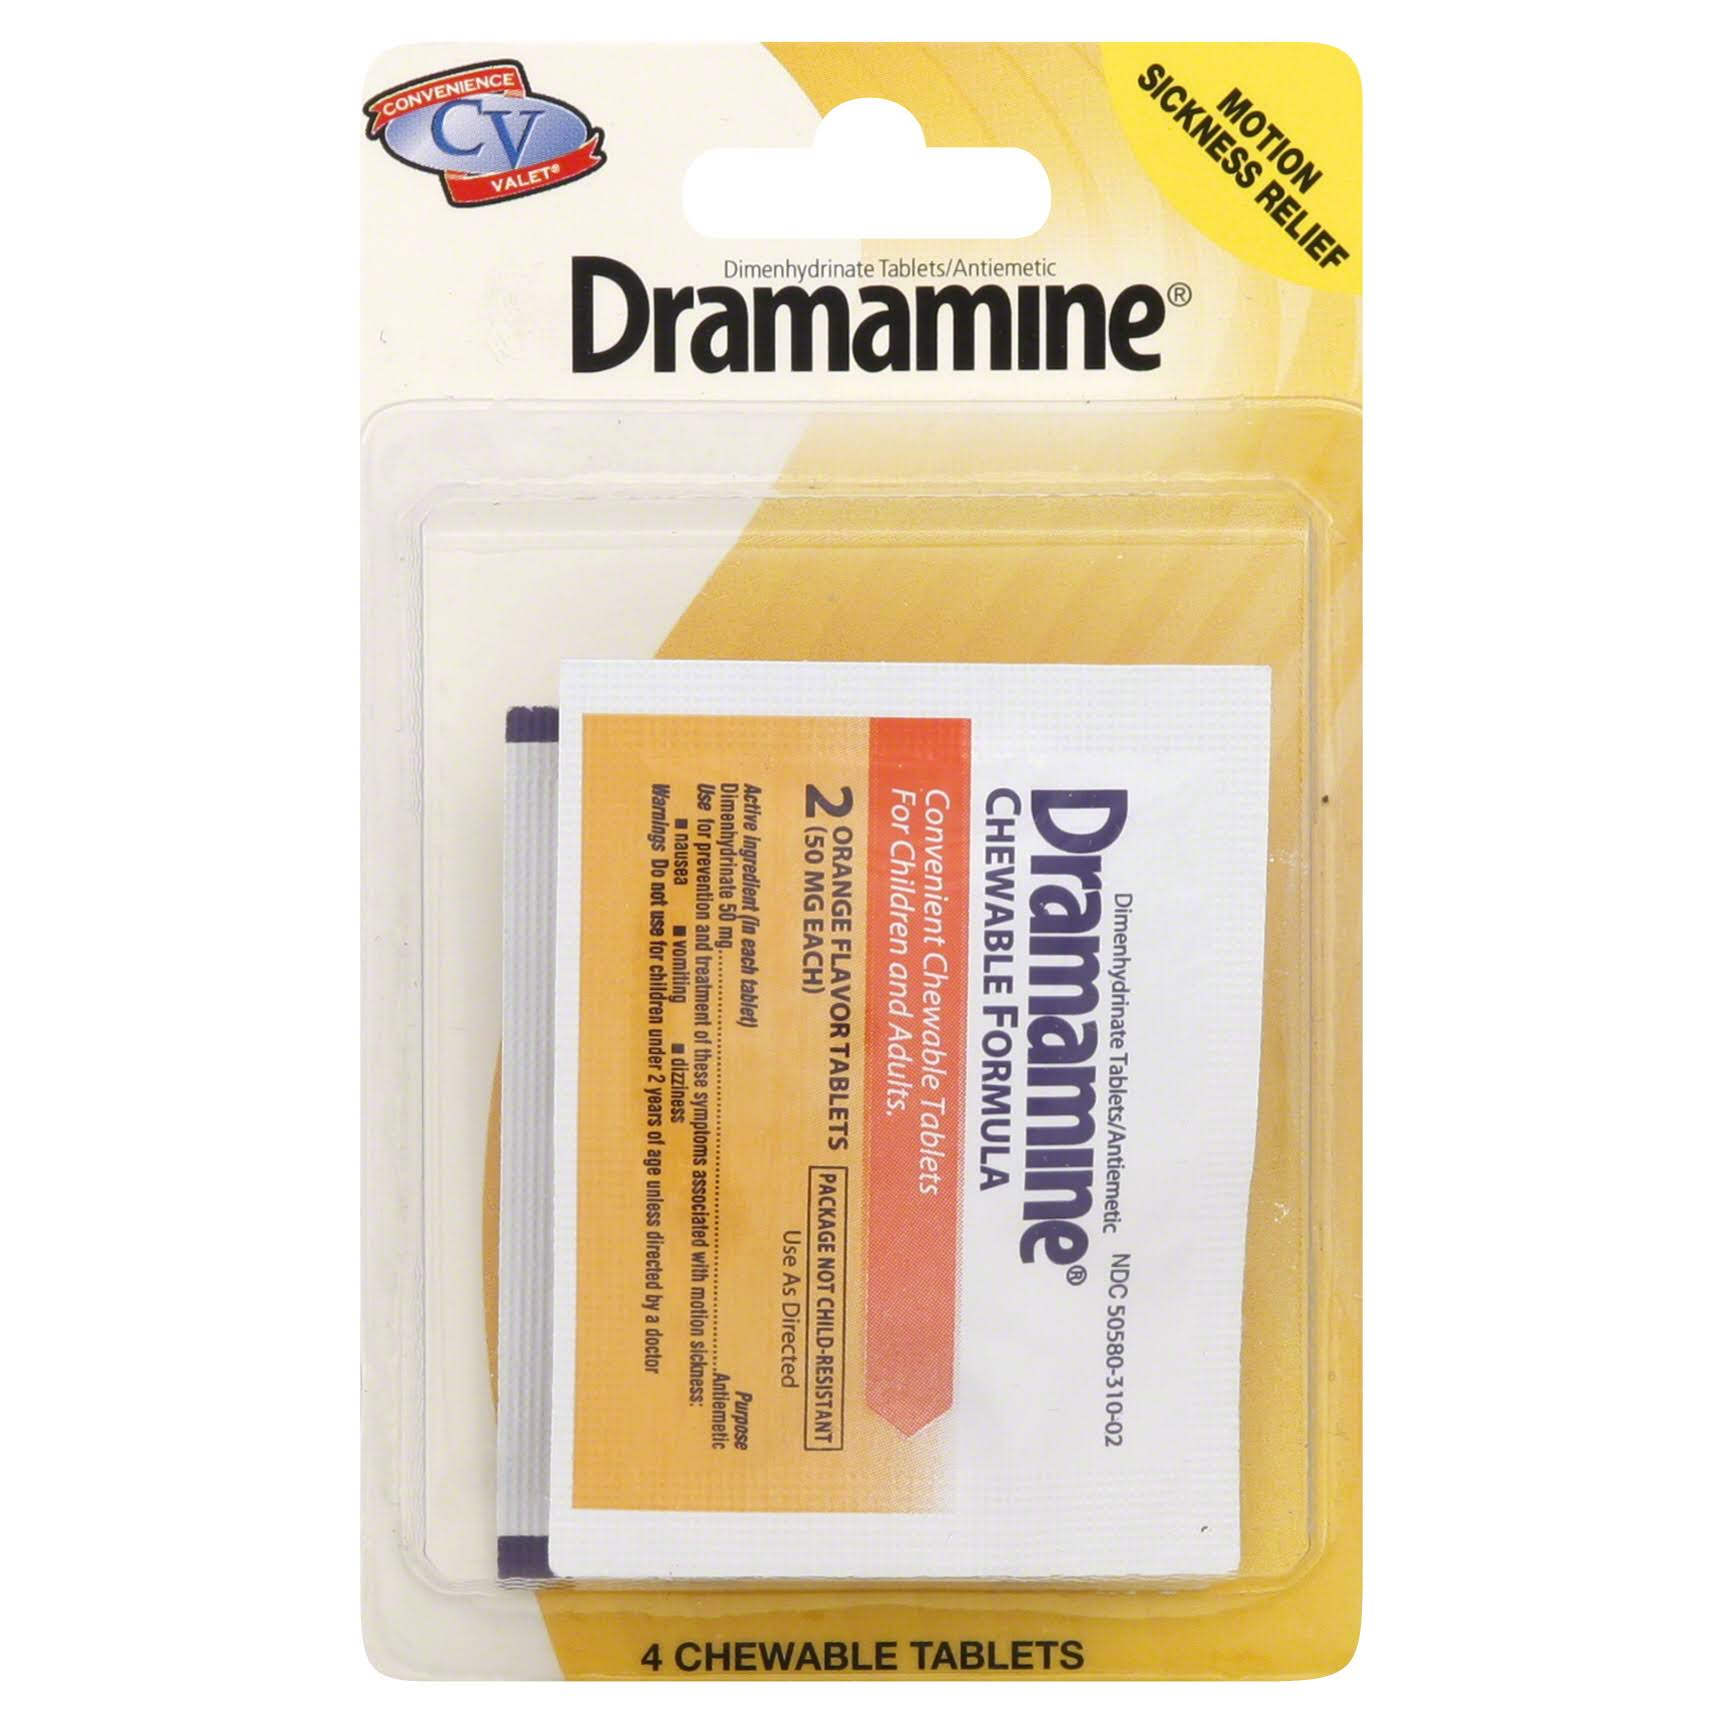 Dramamine Motion Sickness Relief, Chewable Tablets, Orange Flavor - 4 tablets